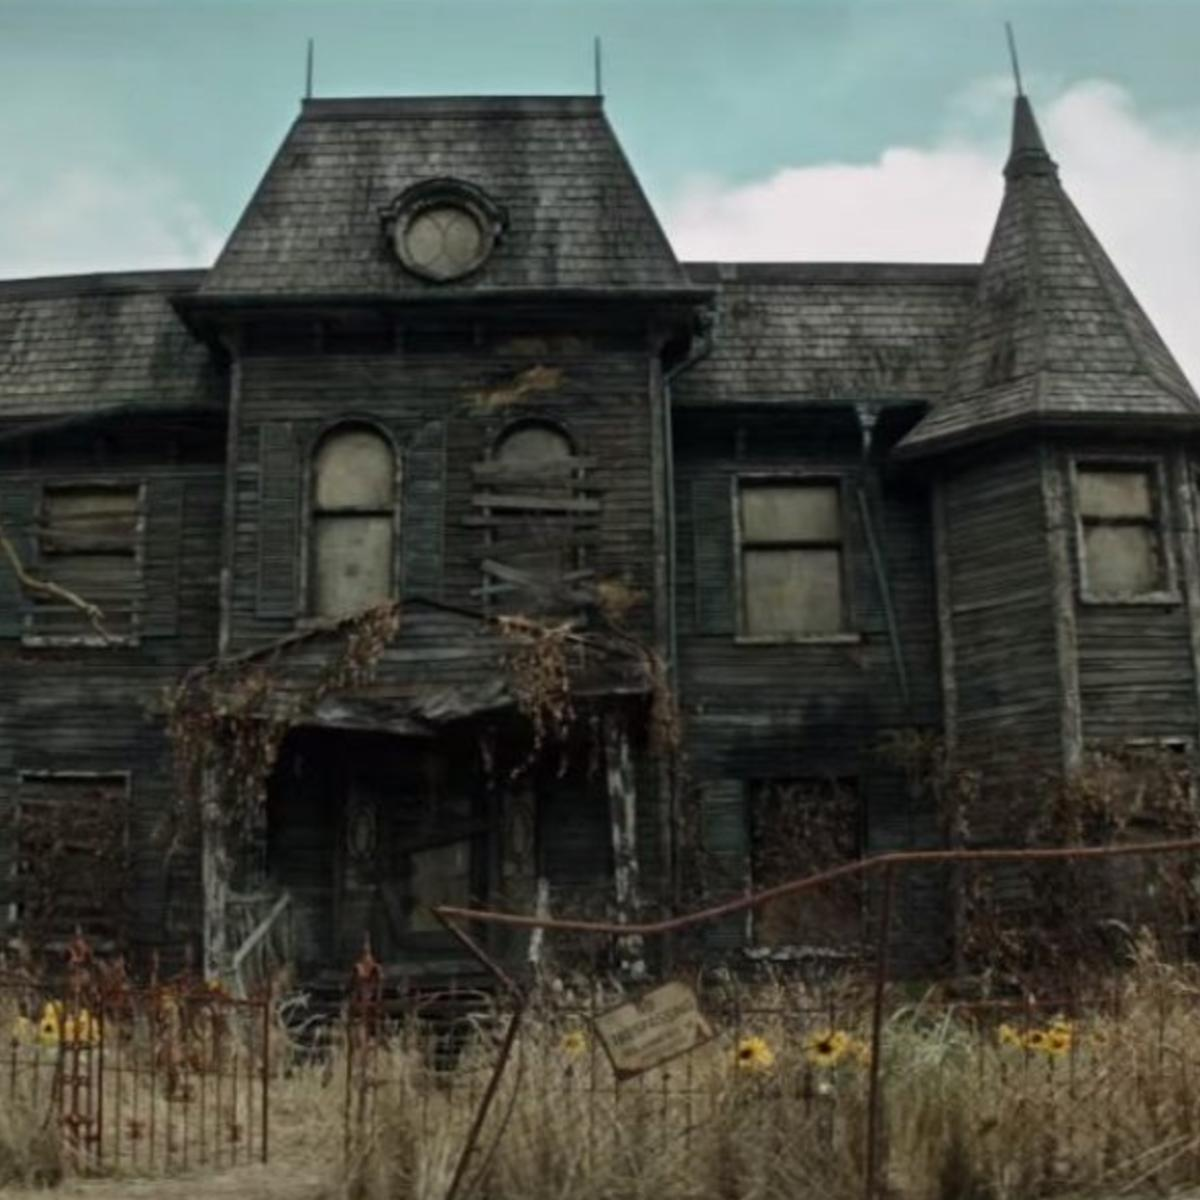 syfy the it house was actually a creepy haunted house irl too